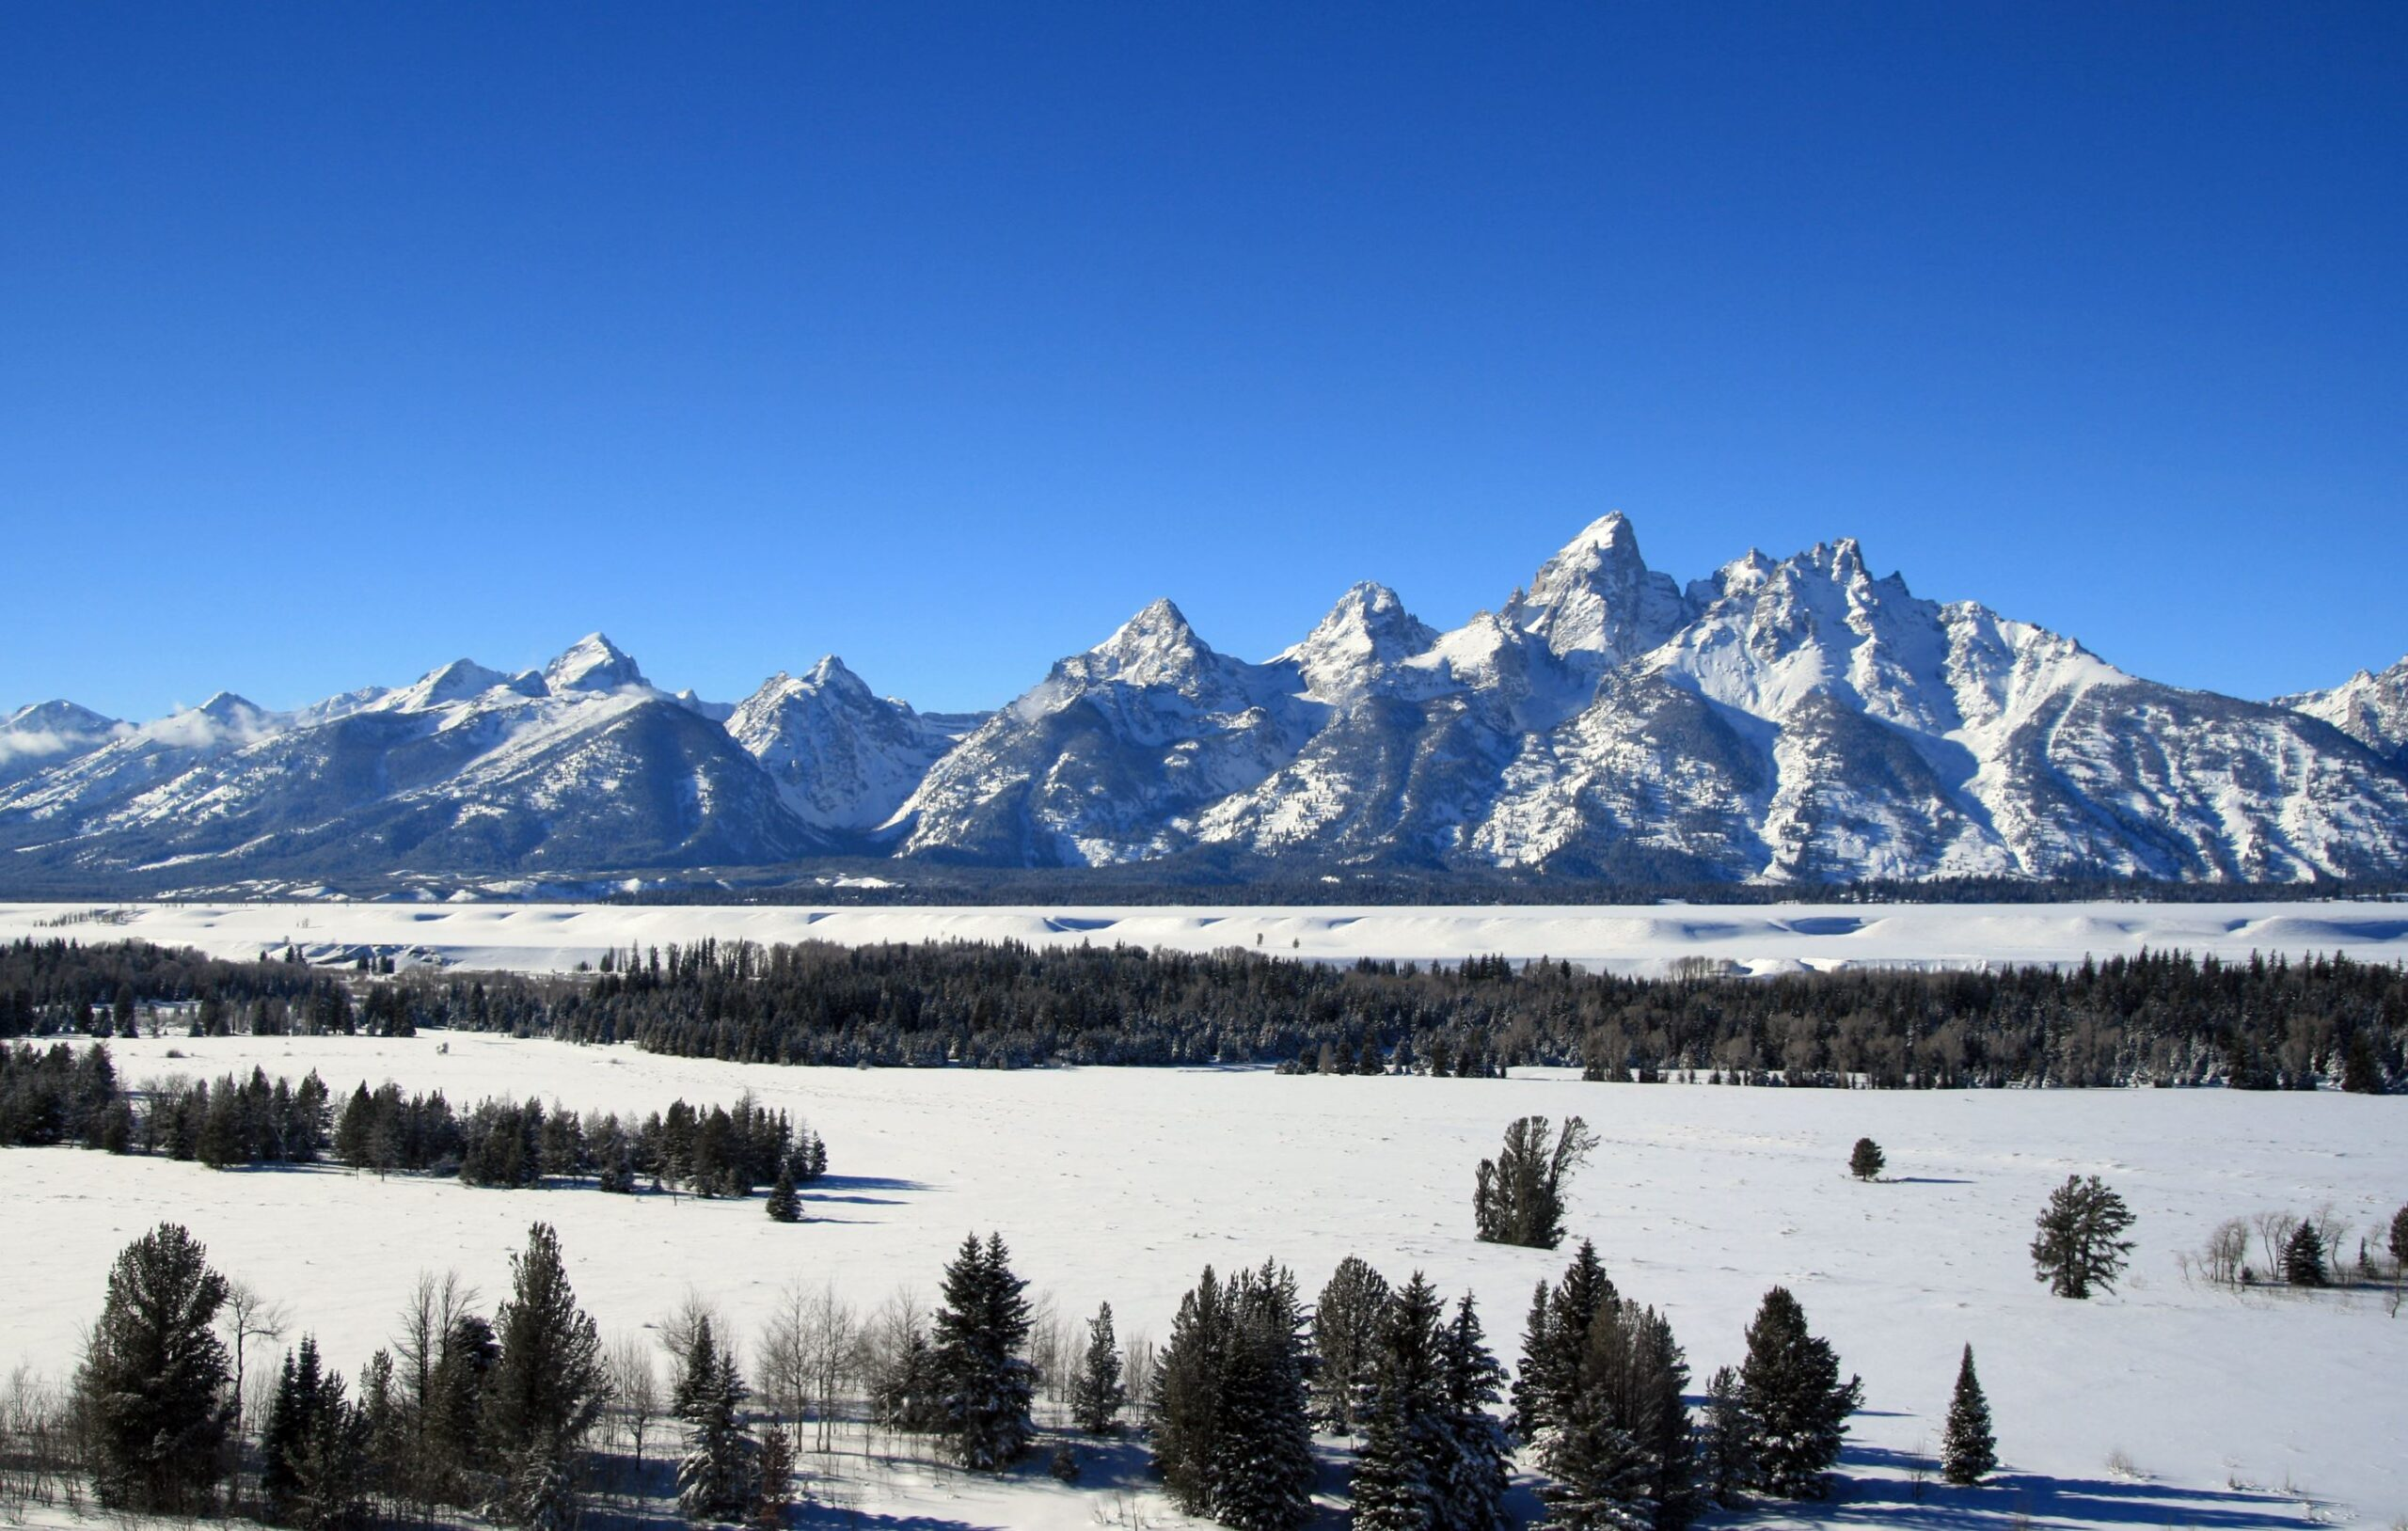 Jackson Hole, WY - Best Winter Destinations in the US